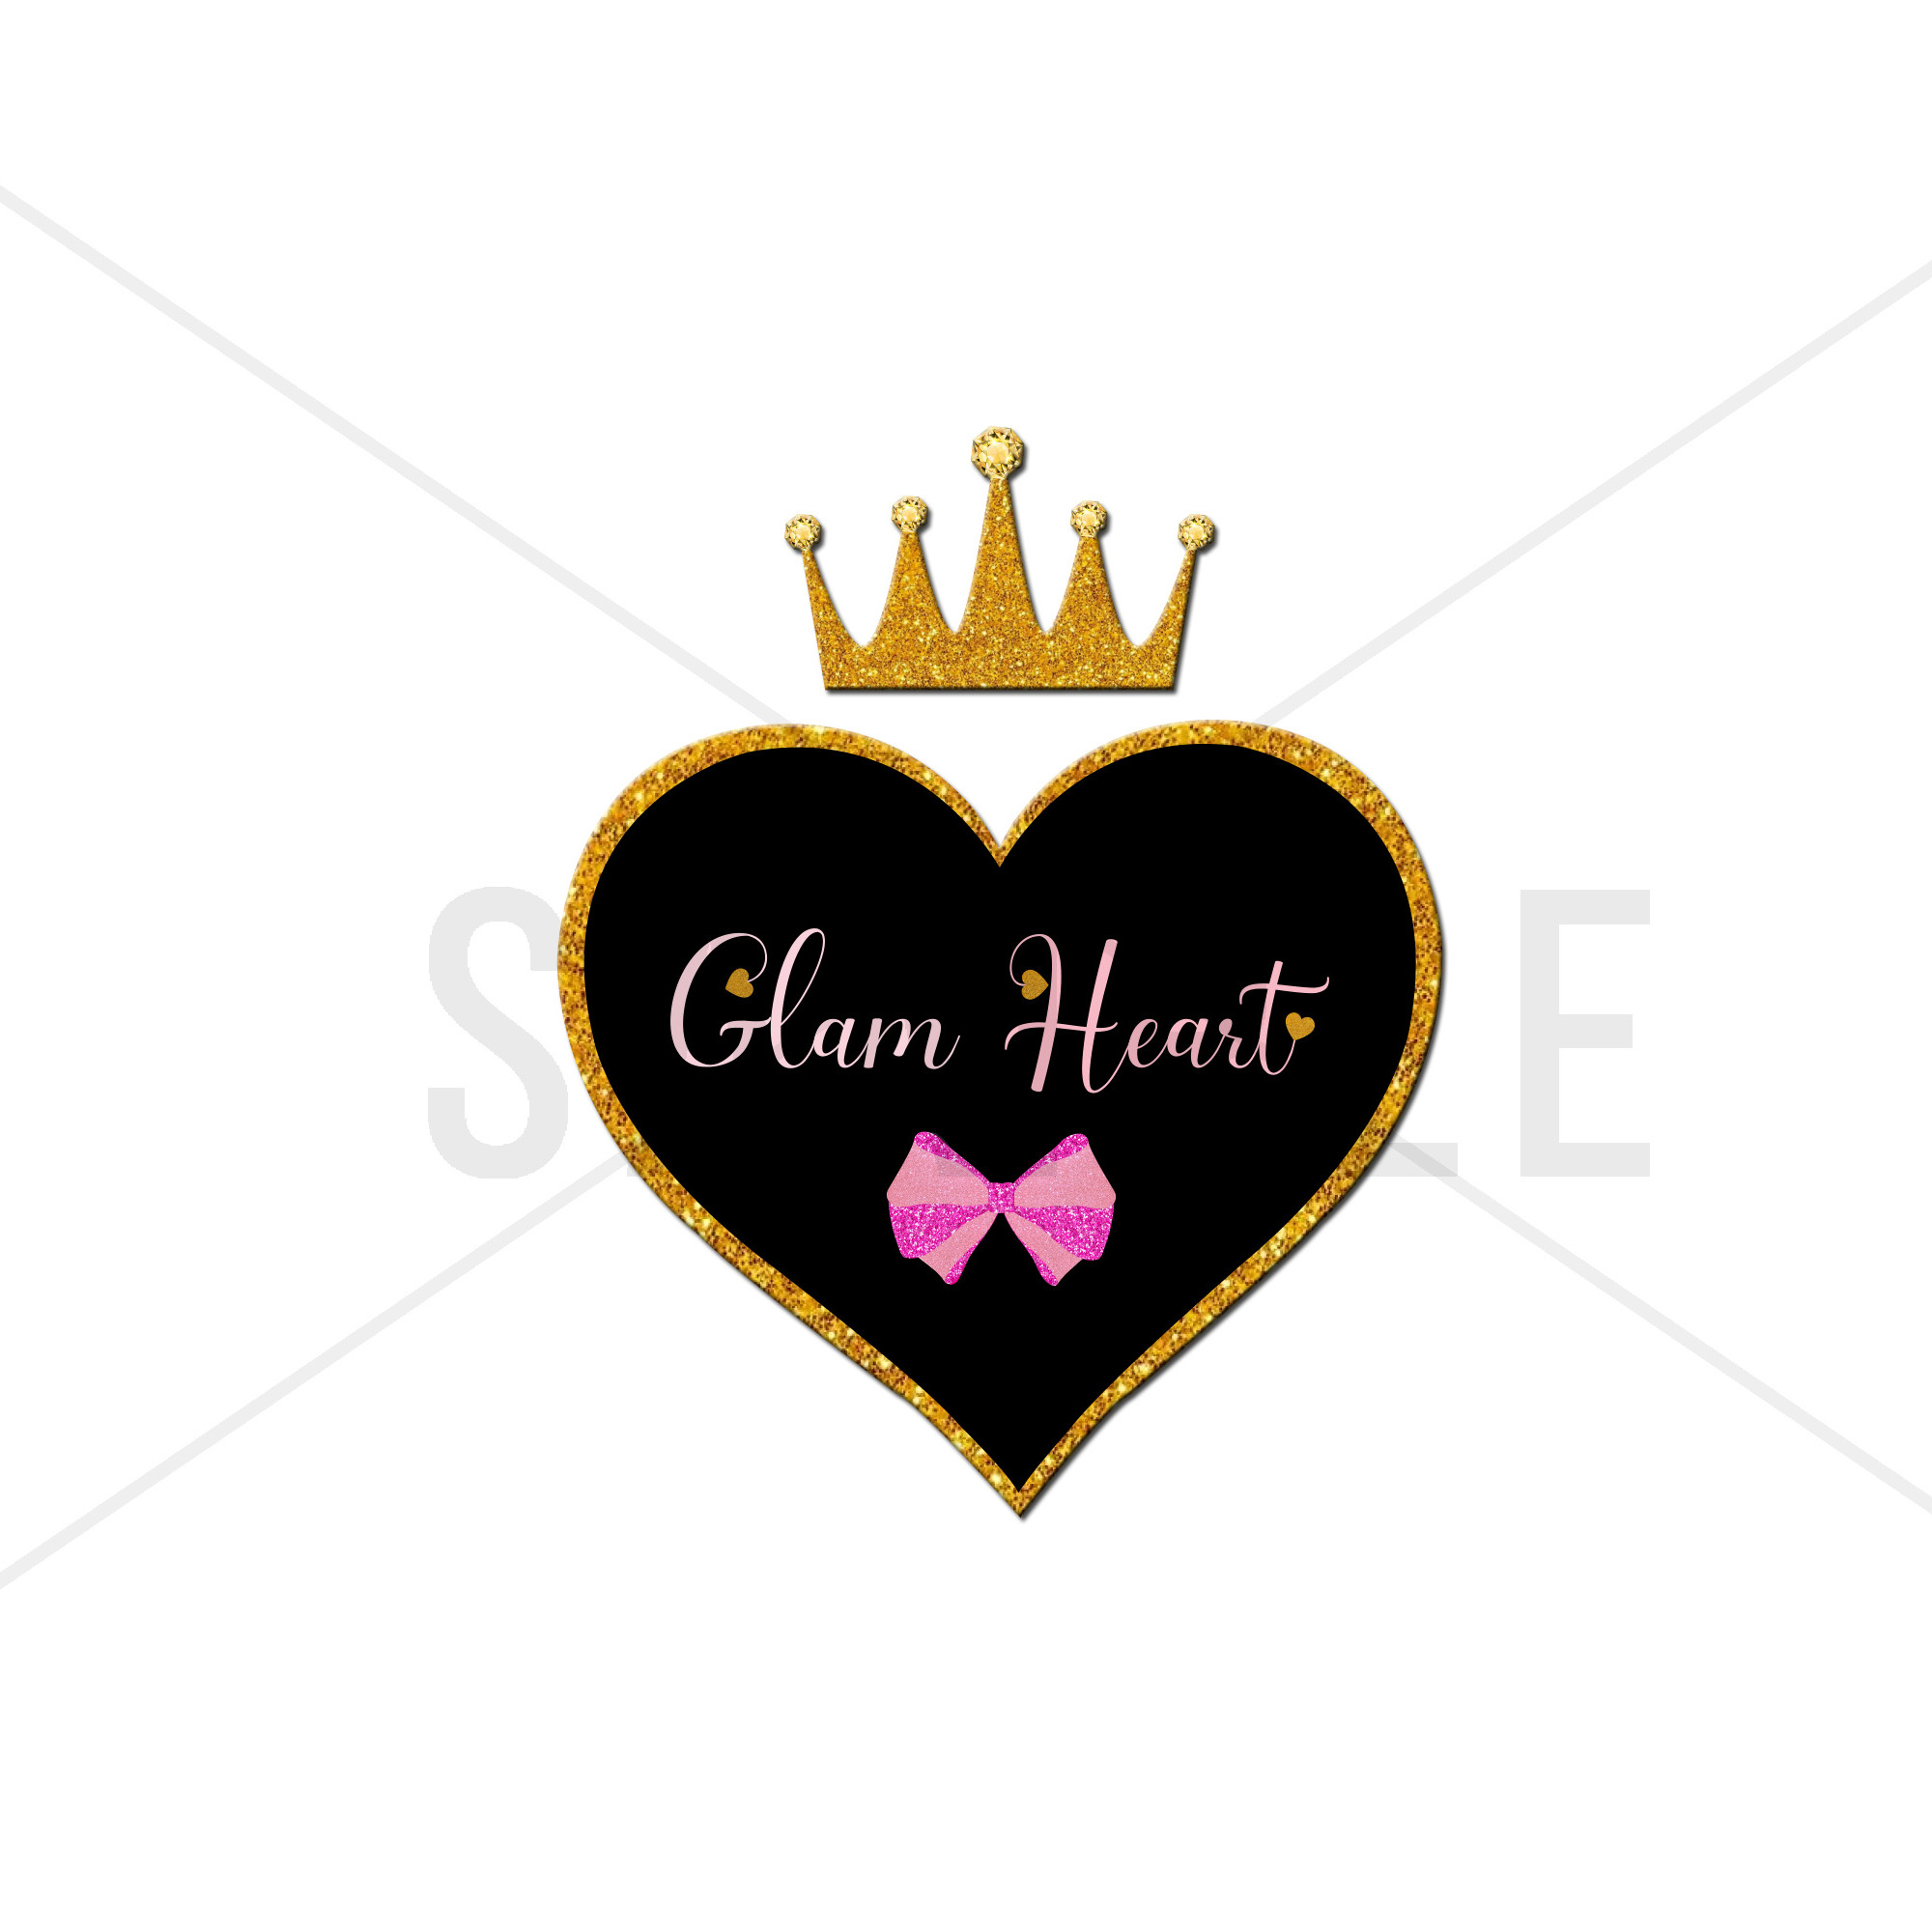 glamheart321's profile picture